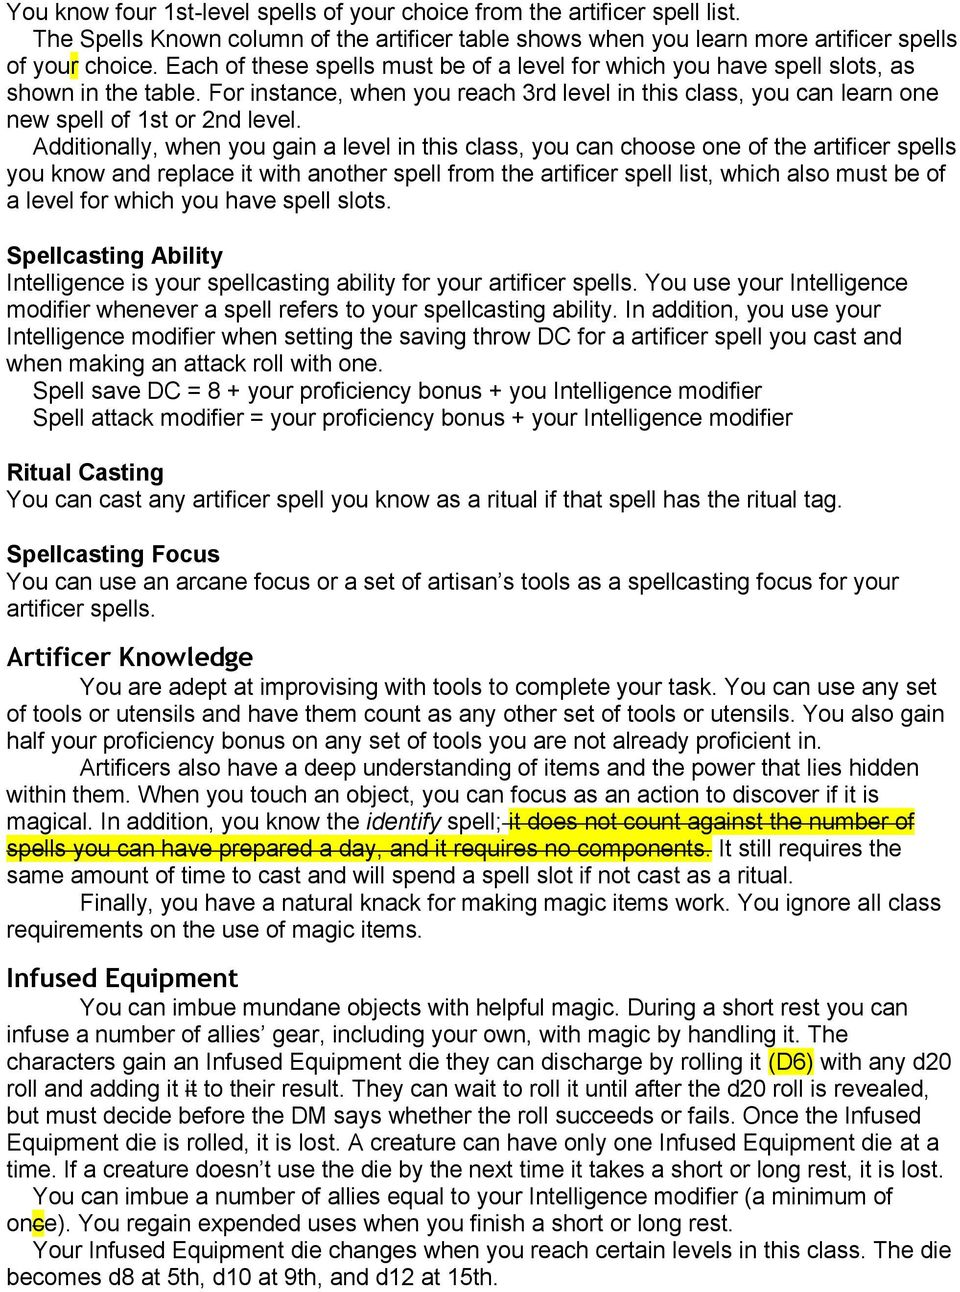 Artificer Cantrips Known Pdf Free Download If religion, spellcaster must worship the listed deity to utilize the spell. artificer cantrips known pdf free